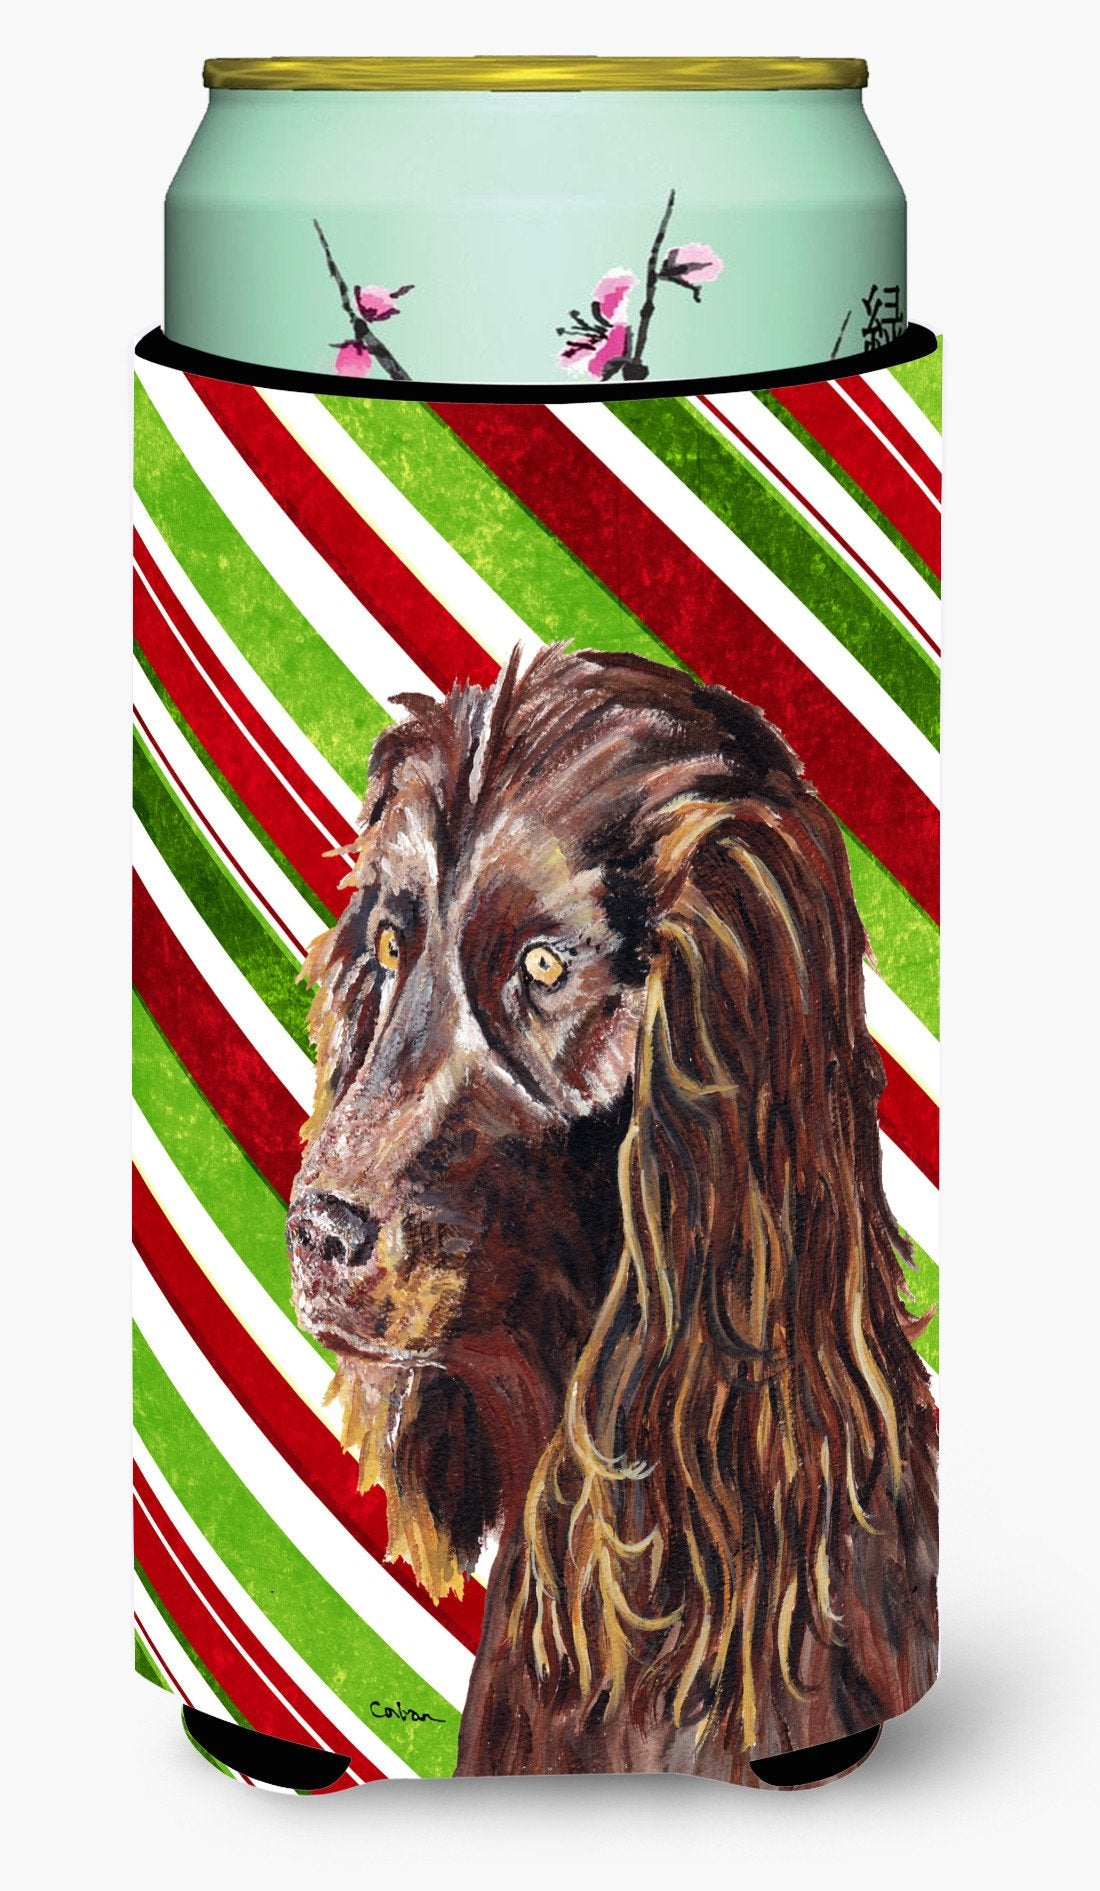 Boykin Spaniel Candy Cane Christmas Tall Boy Beverage Insulator Beverage Insulator Hugger by Caroline's Treasures